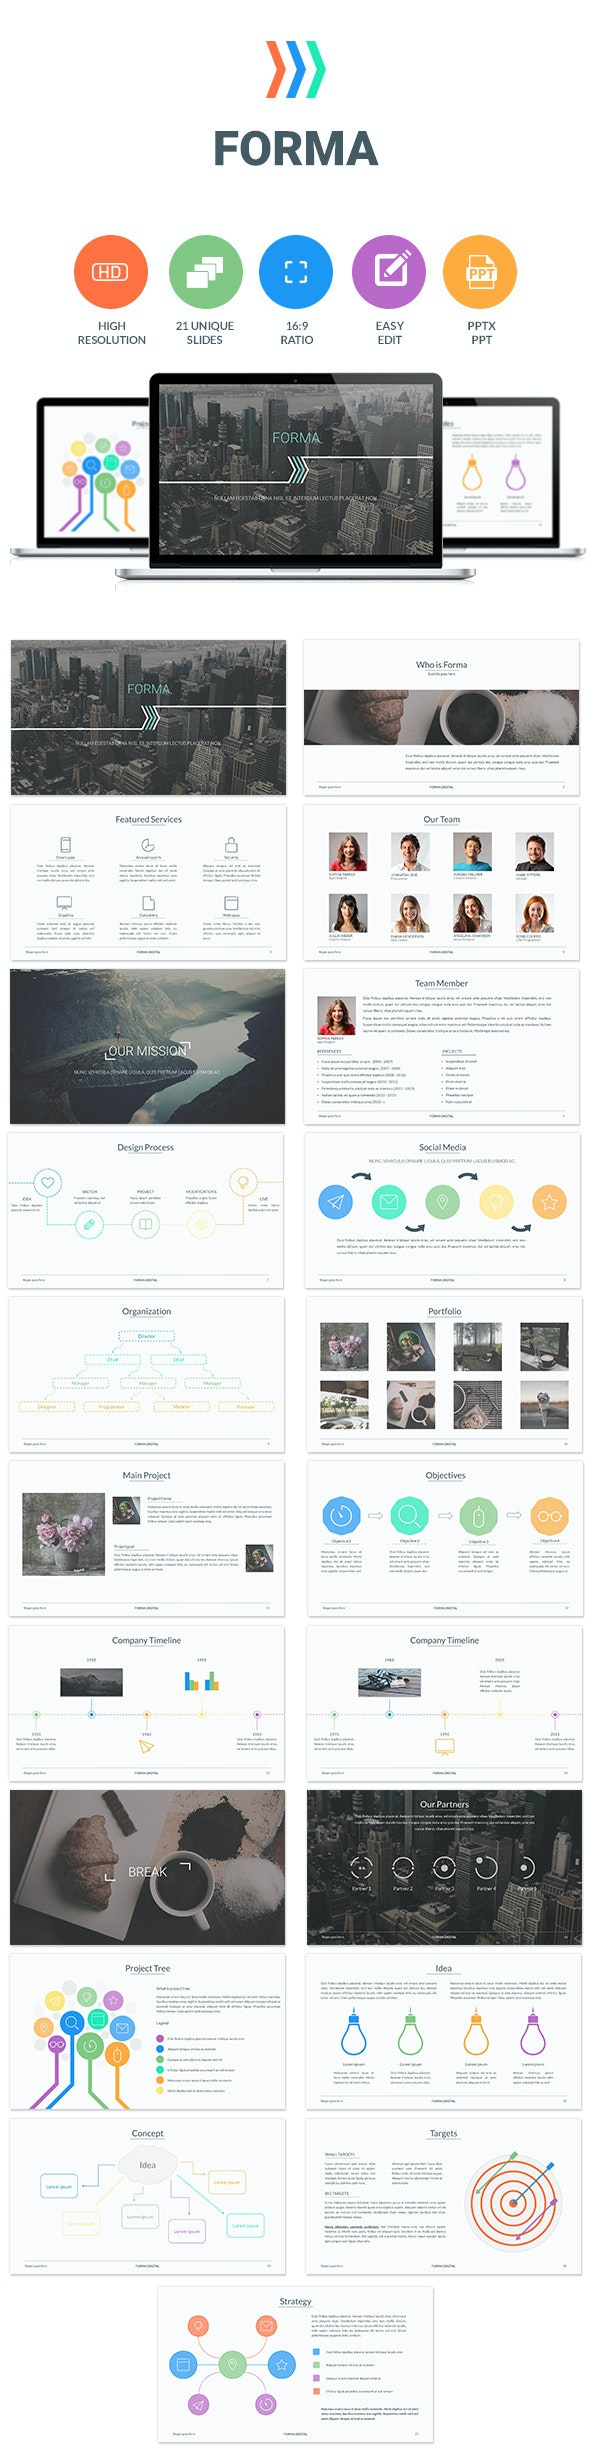 Forma - Business PowerPoint Templates